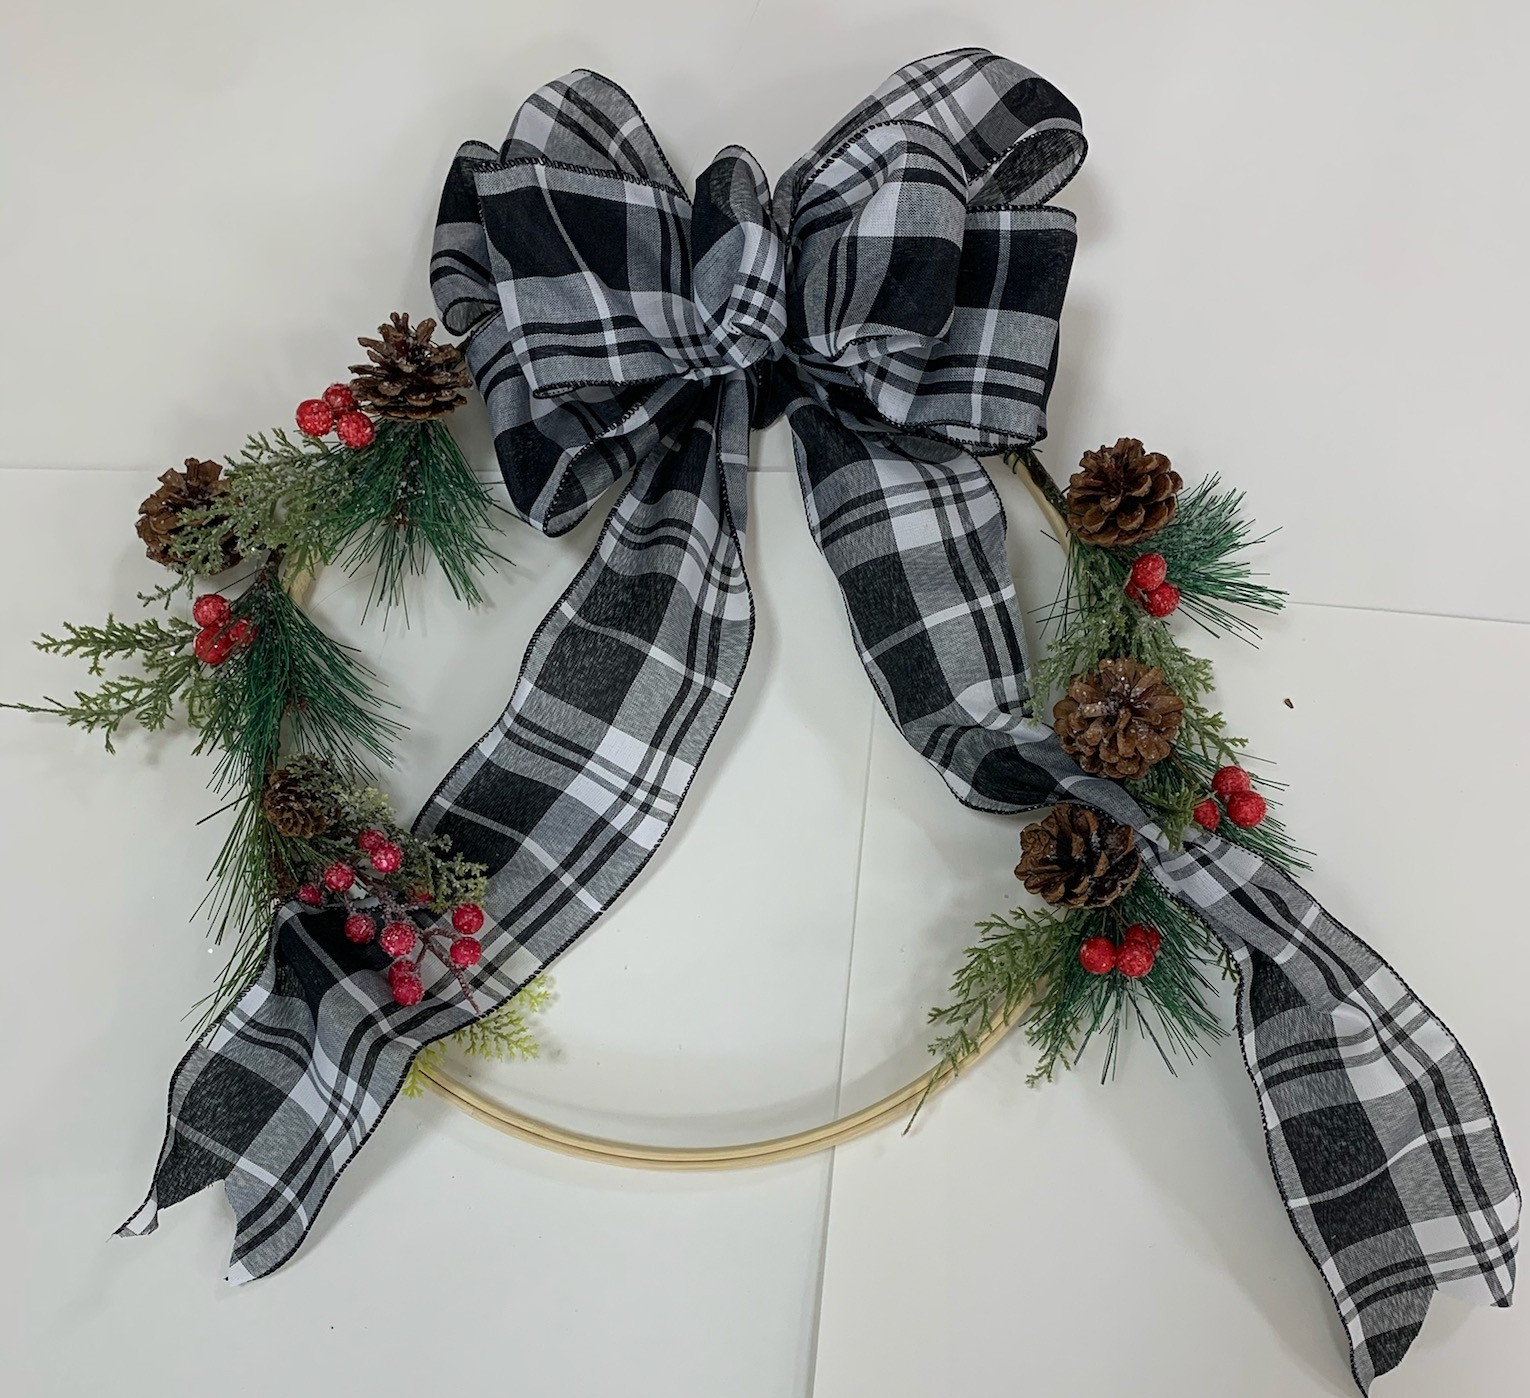 Cabin Fever Craft Series Embroidery Hoop Wreath Virtual Kits And In Person Options Bellview Winery